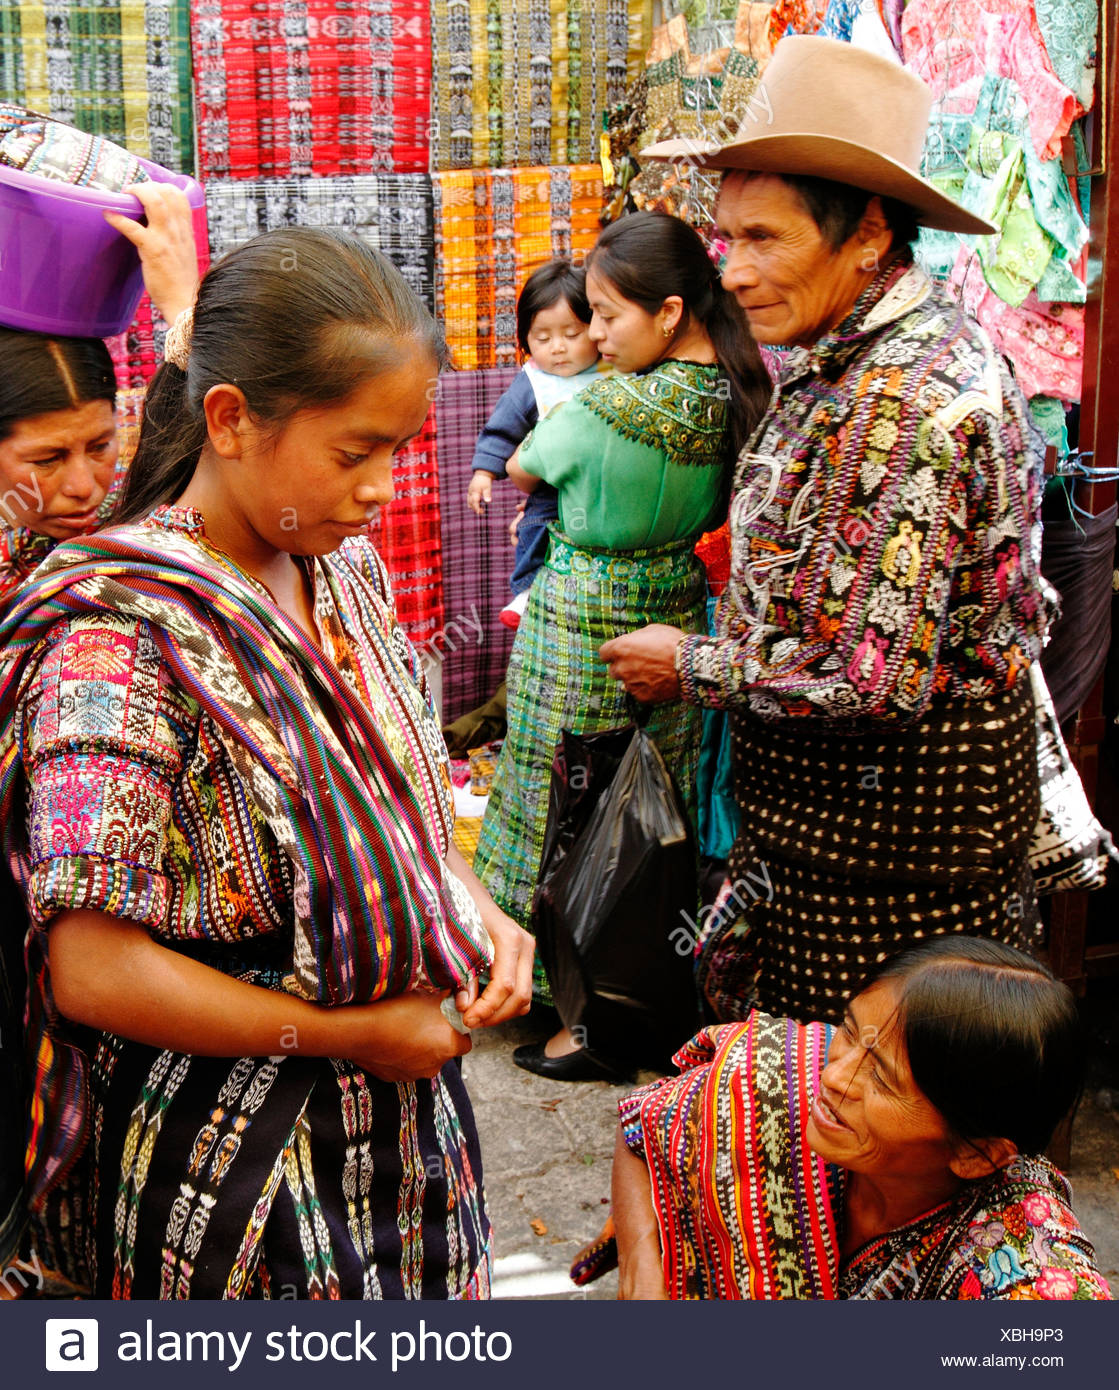 Natives from different regions trade at the Solola Sunday market, Solola Department, Guatemala, Central America - Stock Image